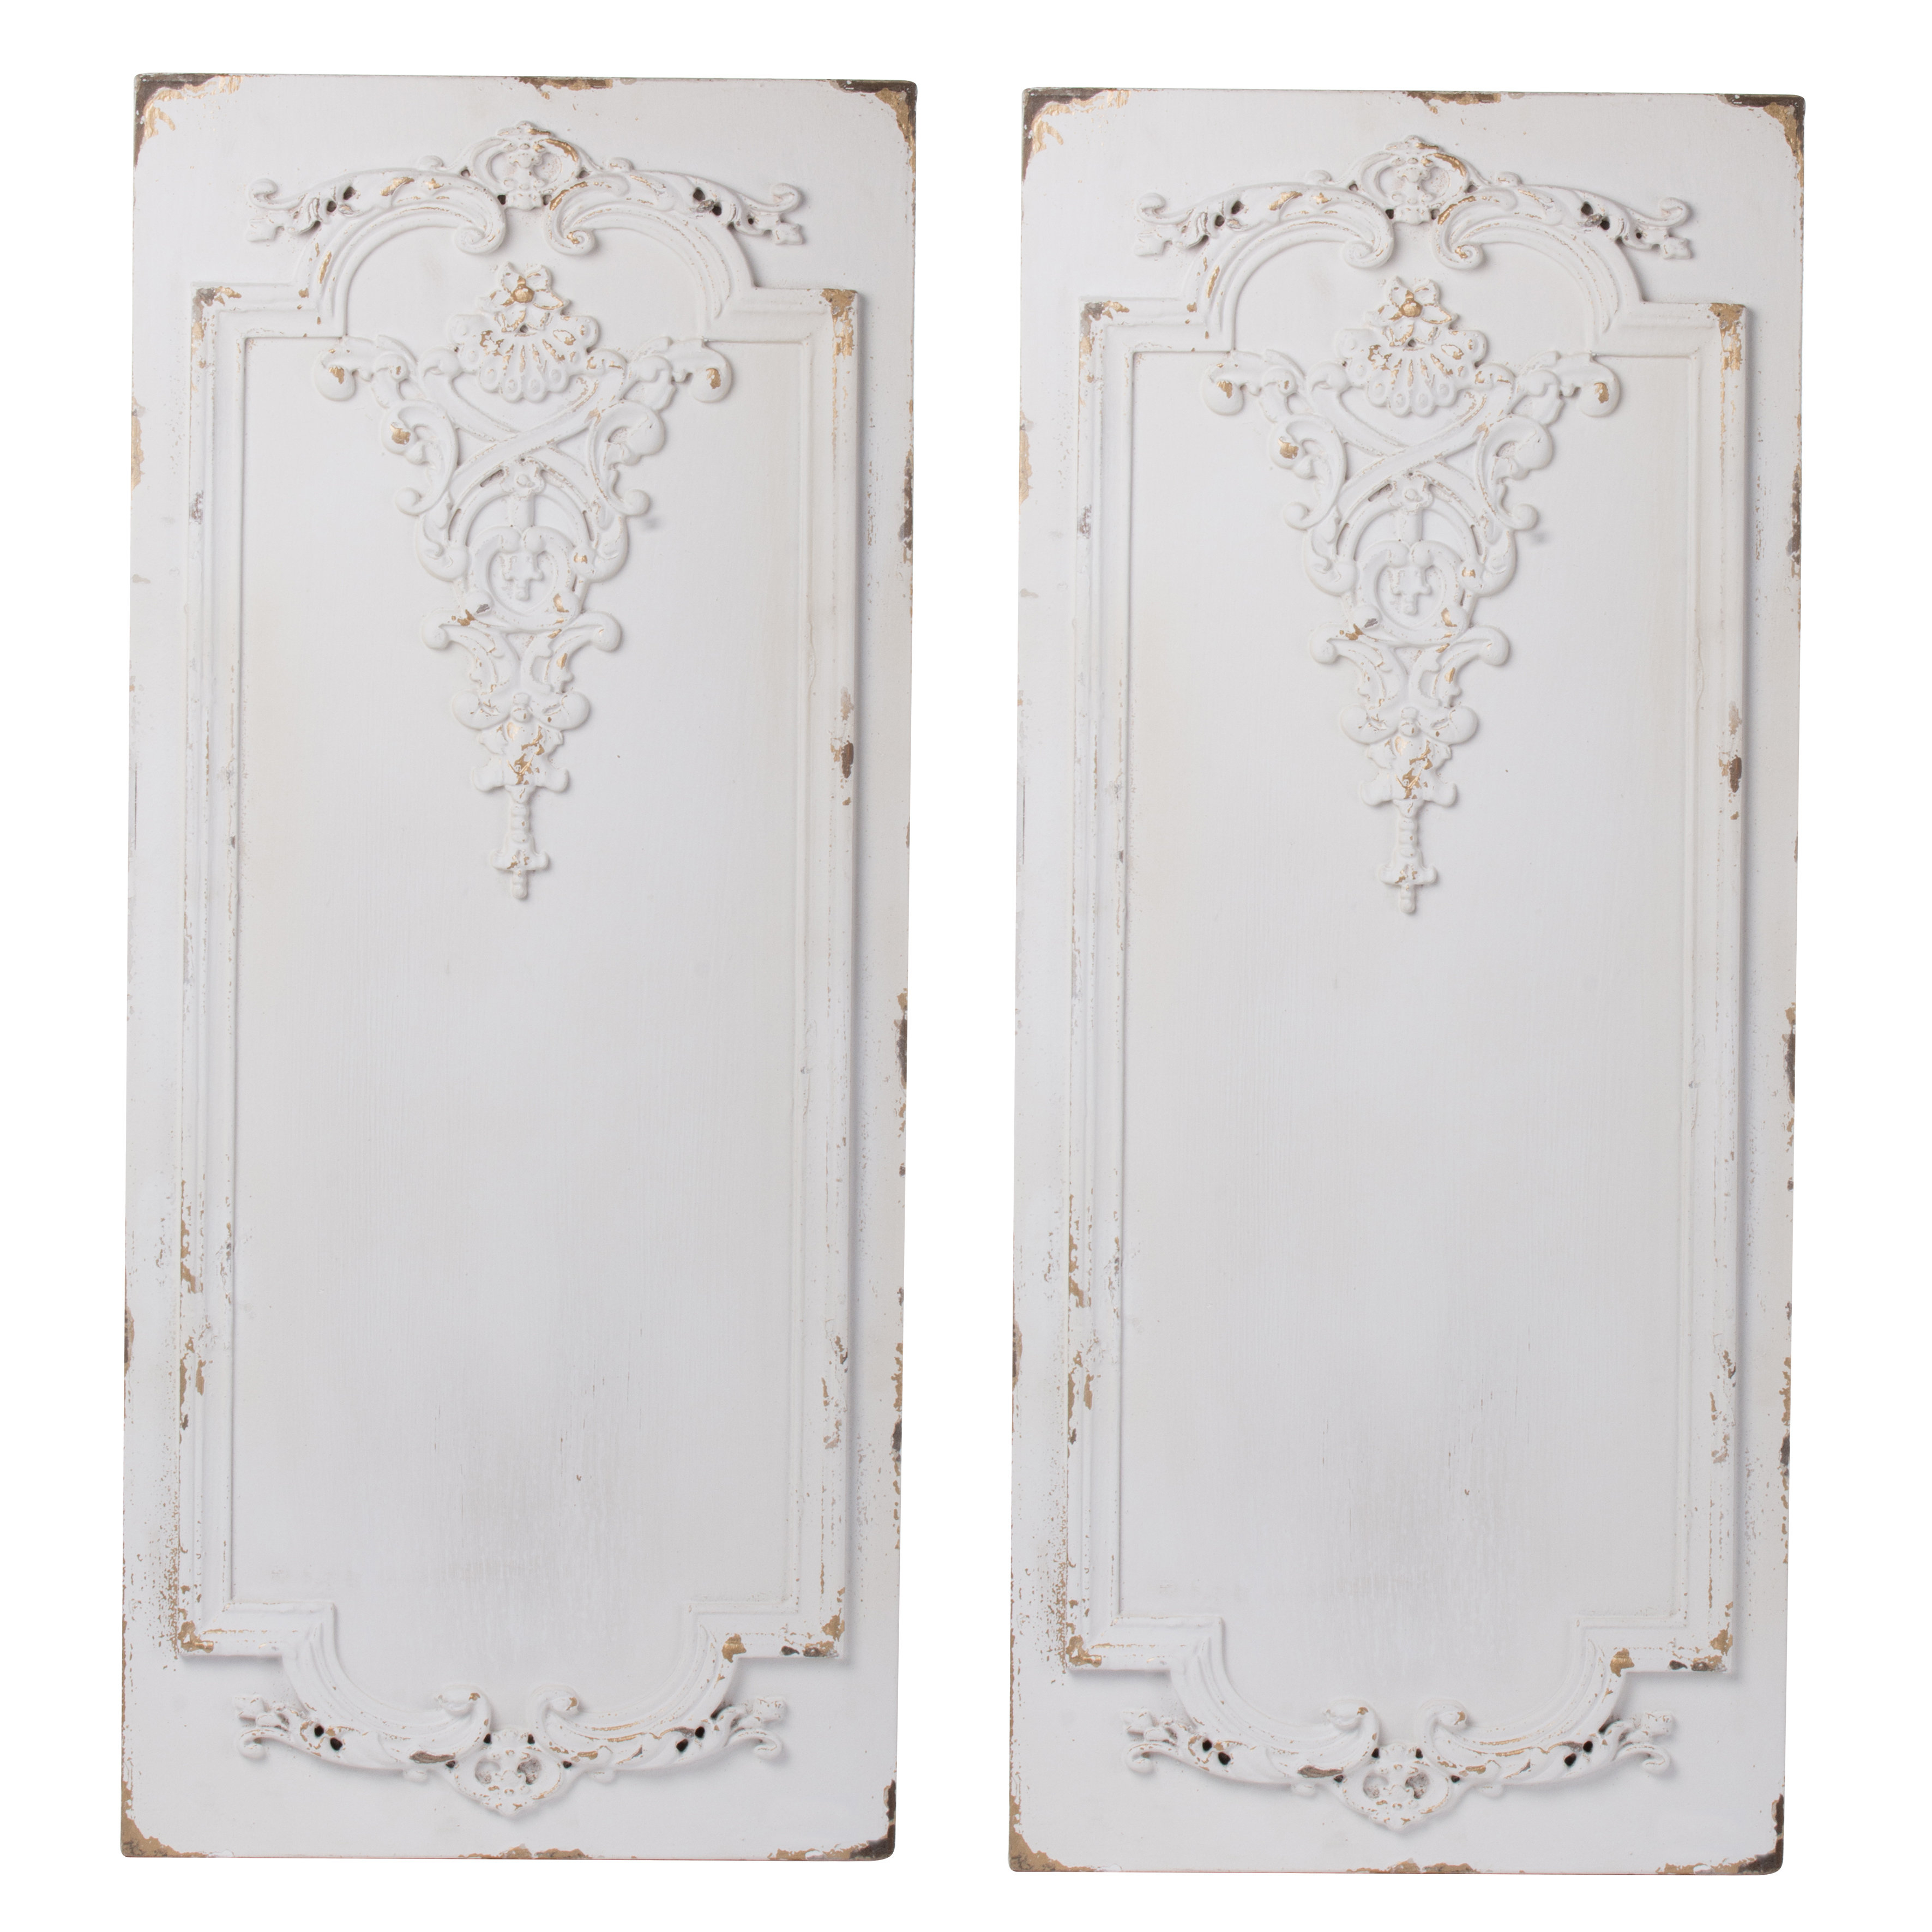 2 Piece Wall Decor Set | Wayfair throughout 2 Piece Trigg Wall Decor Sets (Set Of 2) (Image 5 of 30)